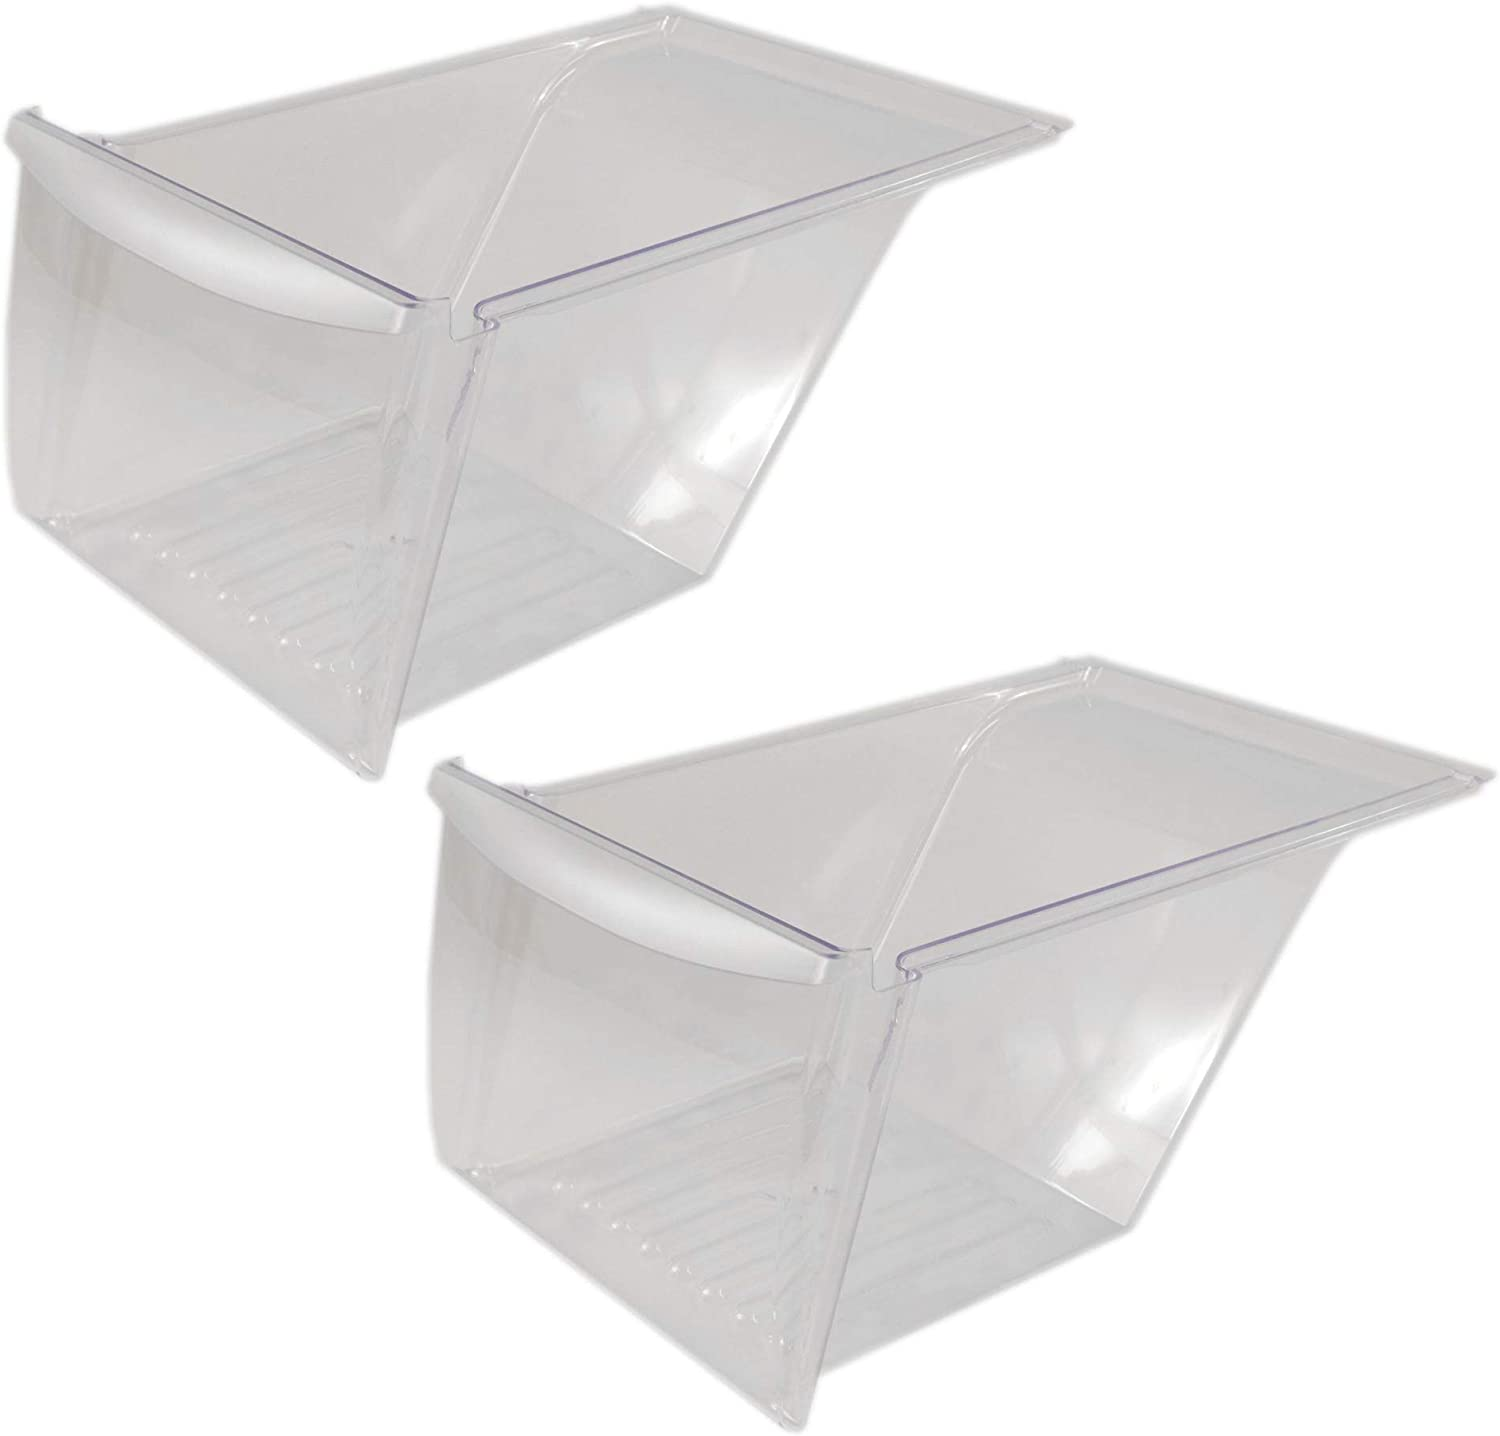 240337103 Refrigerator Crisper Drawer Genuine Original Equipment Manufacturer (OEM) Part, 2-Pack